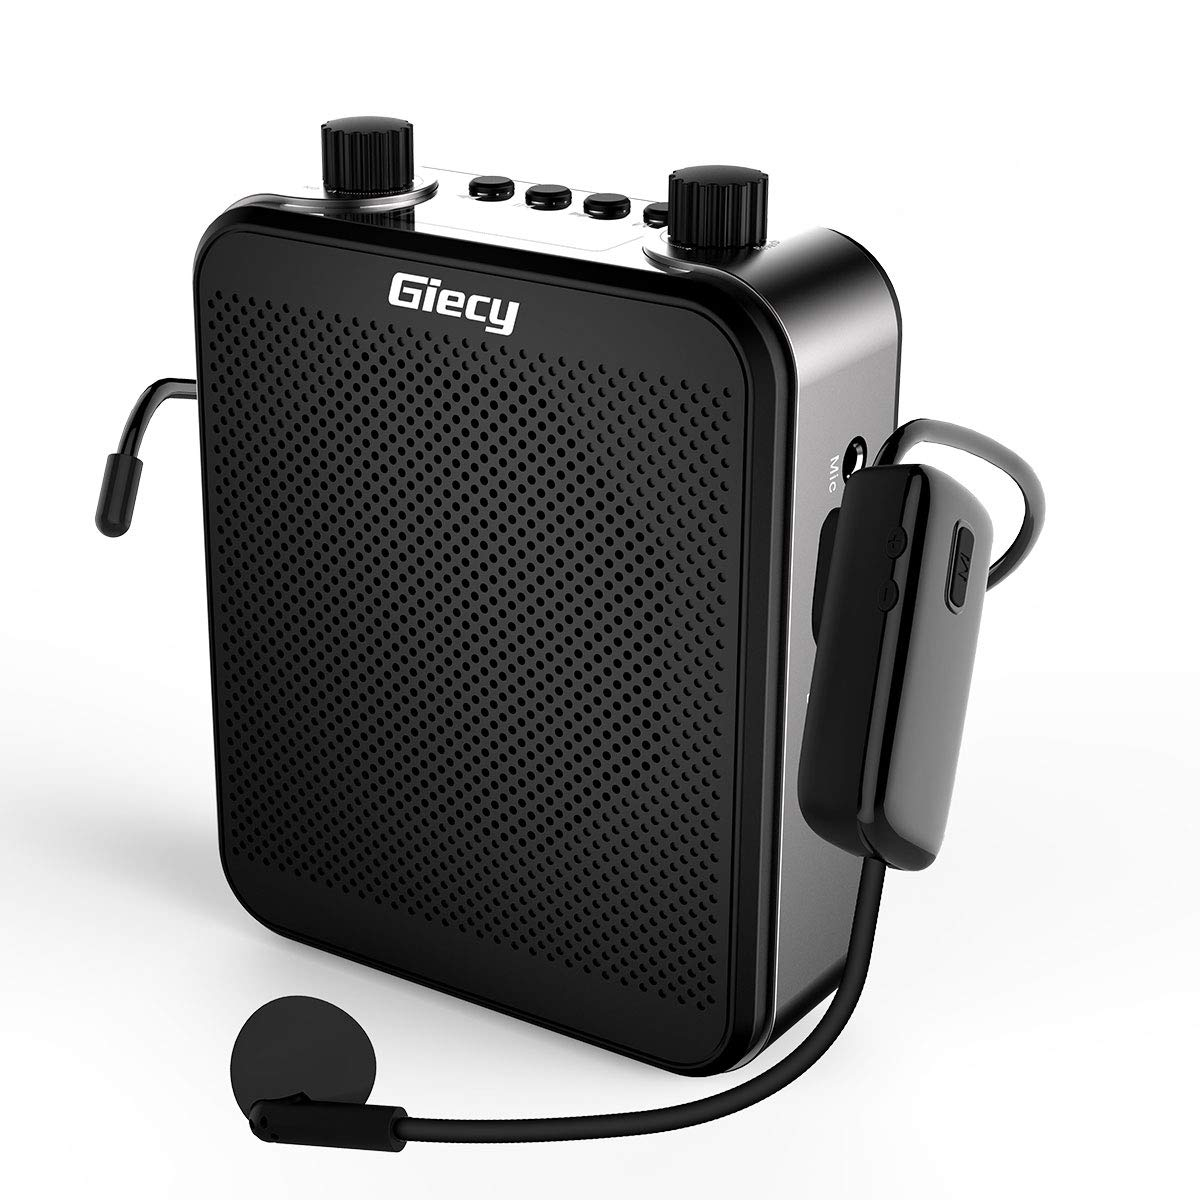 Giecy Voice Amplifier Wireless Personal with UHF Microphone Headset 30W 2800mAh Portable Amplifiers Rechargeable for Teachers Singing CoachesTraining Tour Guide by Giecy